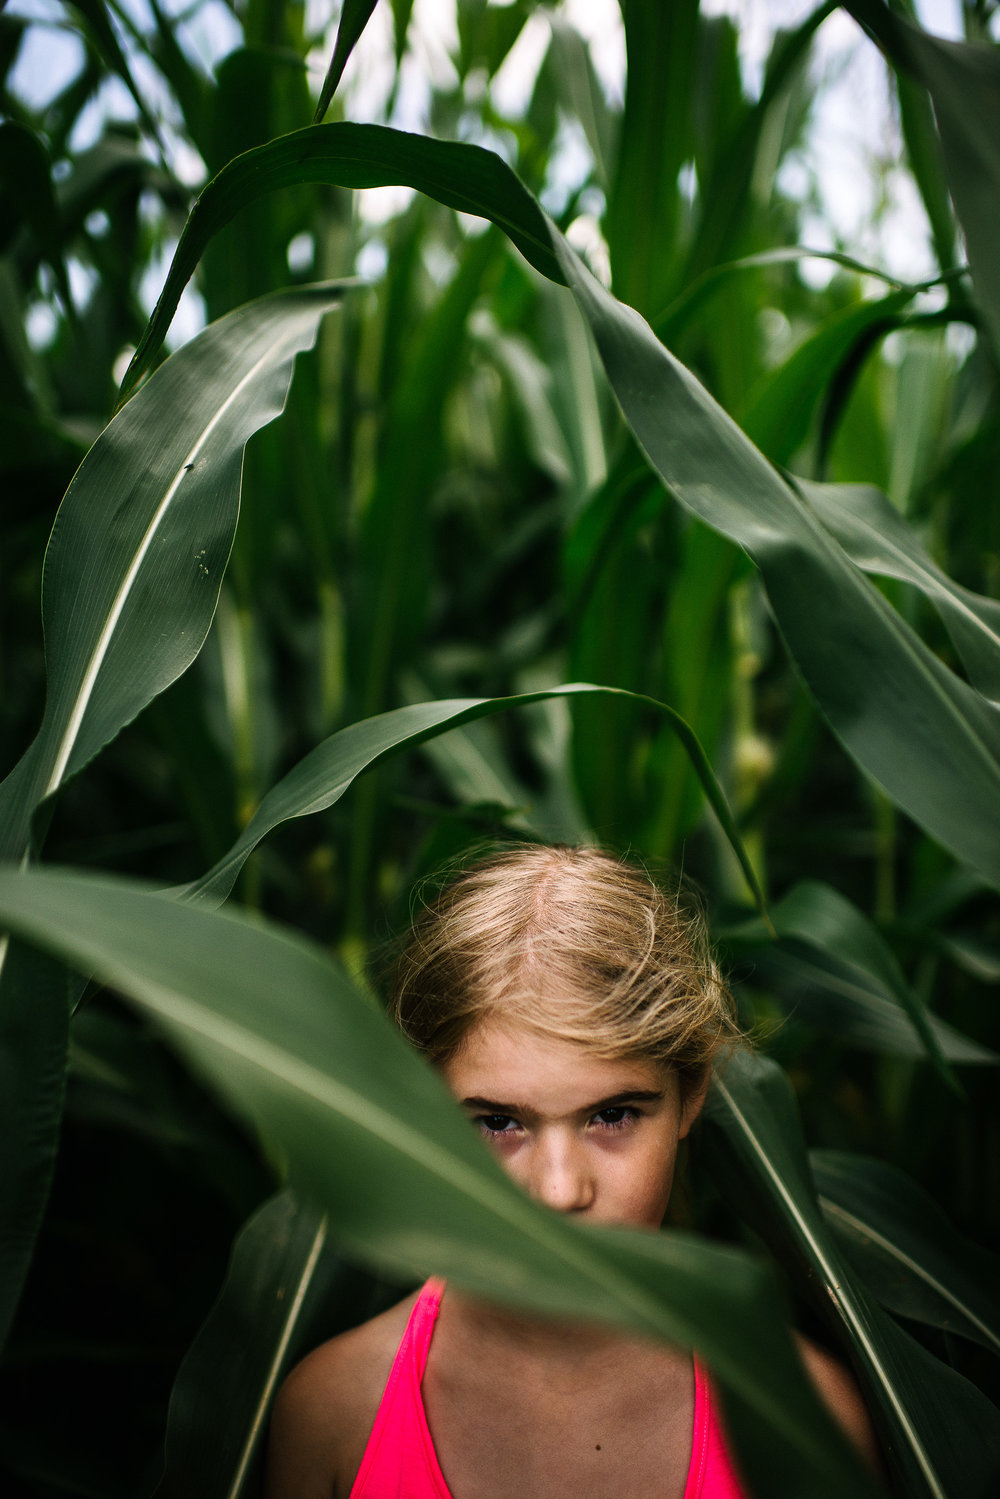 mysterious, in the corn